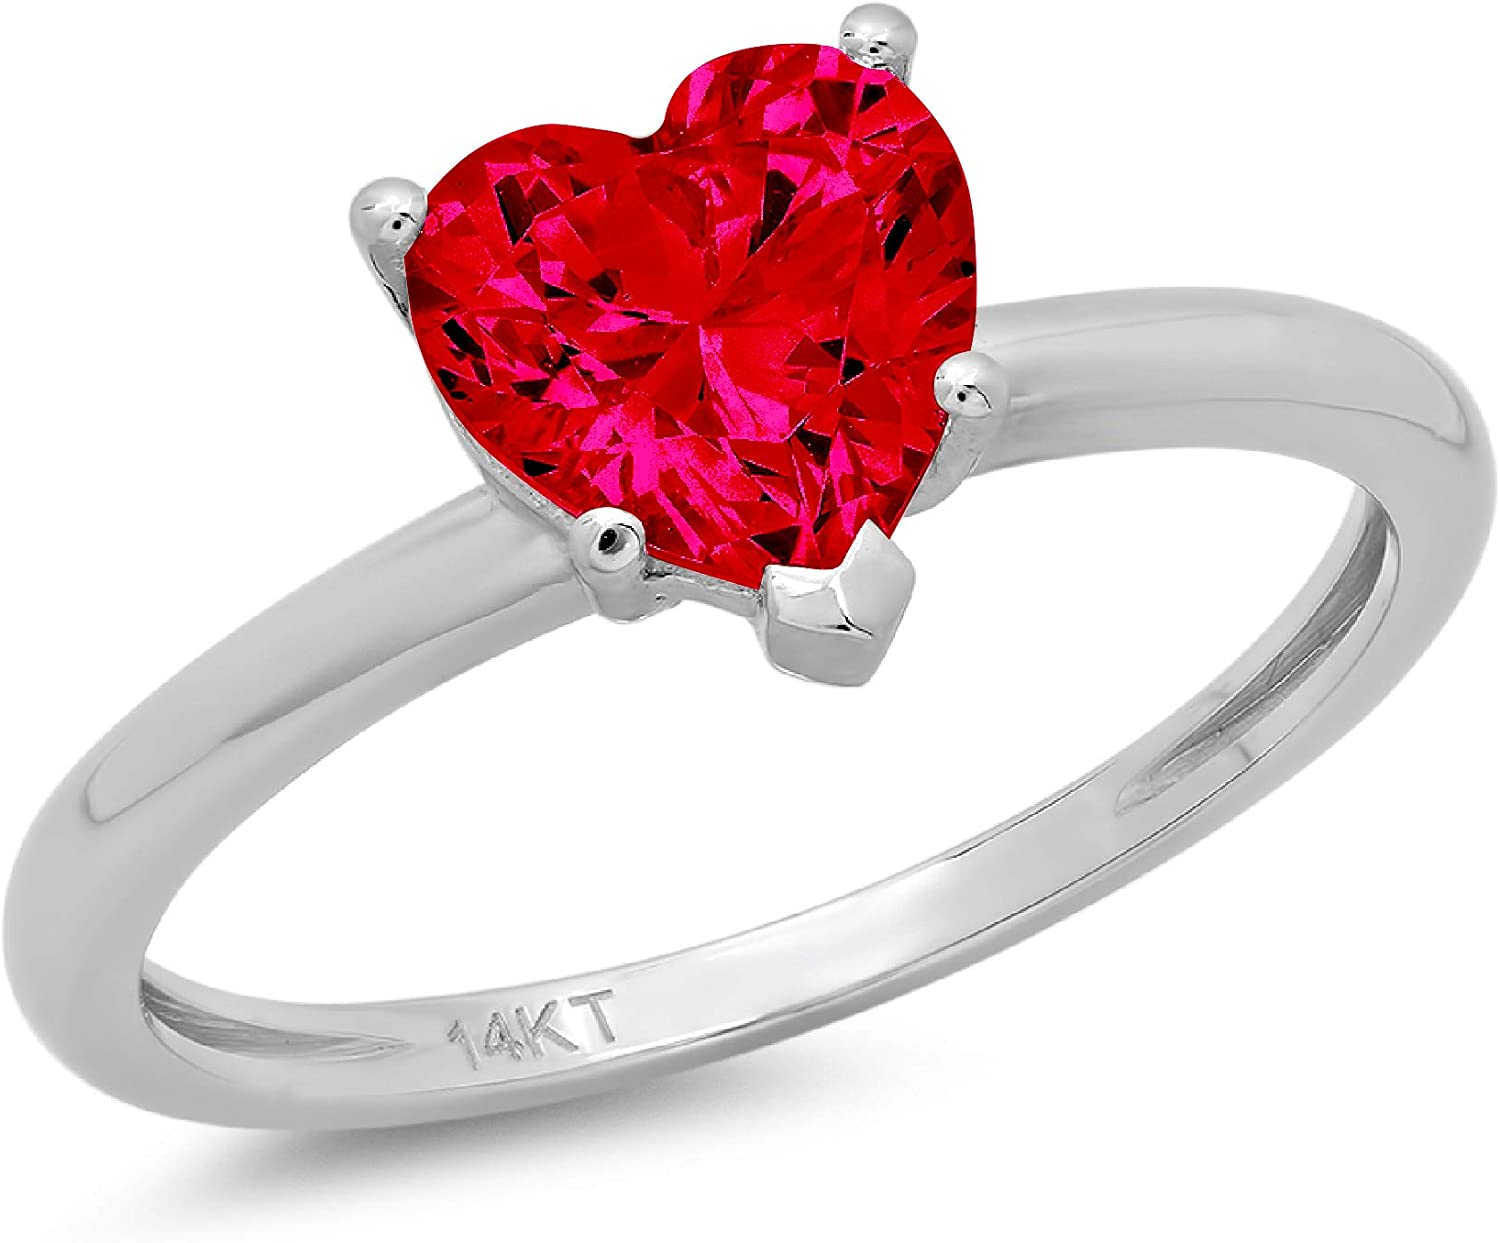 2.0 ct Brilliant Heart Cut Solitaire Flawless Simulated CZ Red Ruby Ideal VVS1 5-Prong Engagement Wedding Bridal Promise Anniversary Designer Ring Solid 14k White Gold for Women